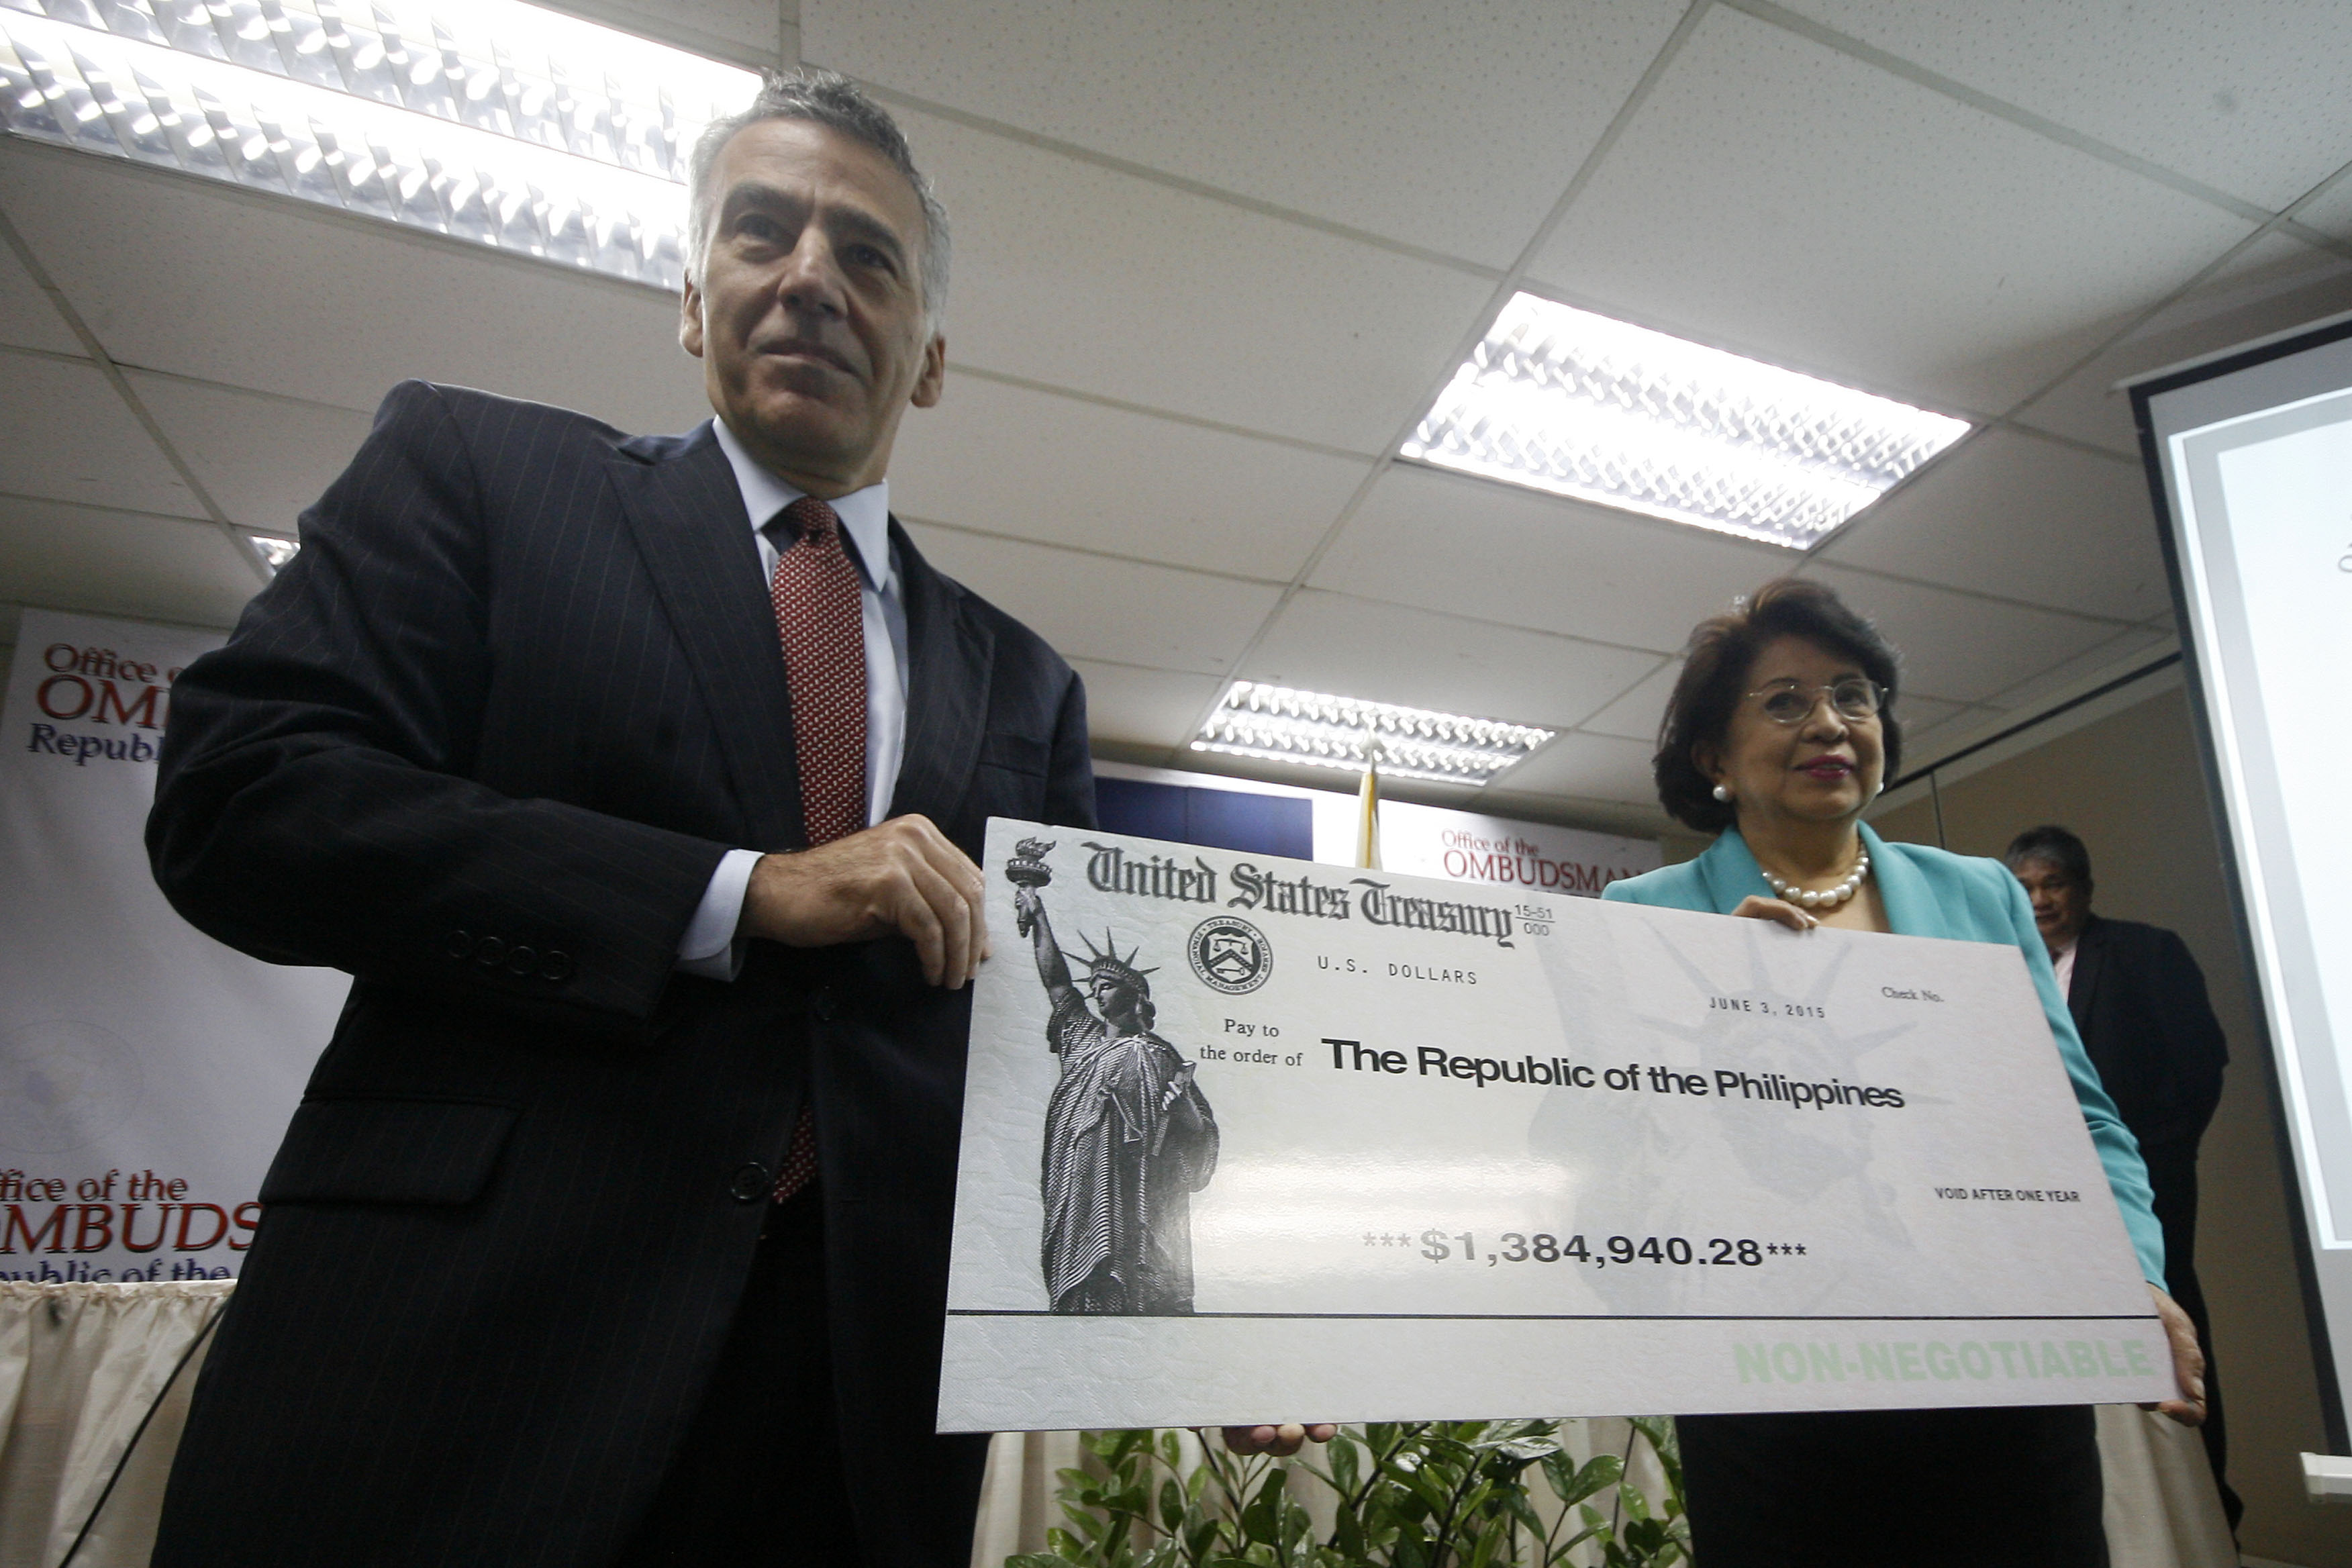 COOPERATION. US ambassador Philip Goldberg and Ombudsman Conchita Carpio Morales at the turnover ceremony at the Office of the Ombudsman. Photo by Ben Nabong/Rappler